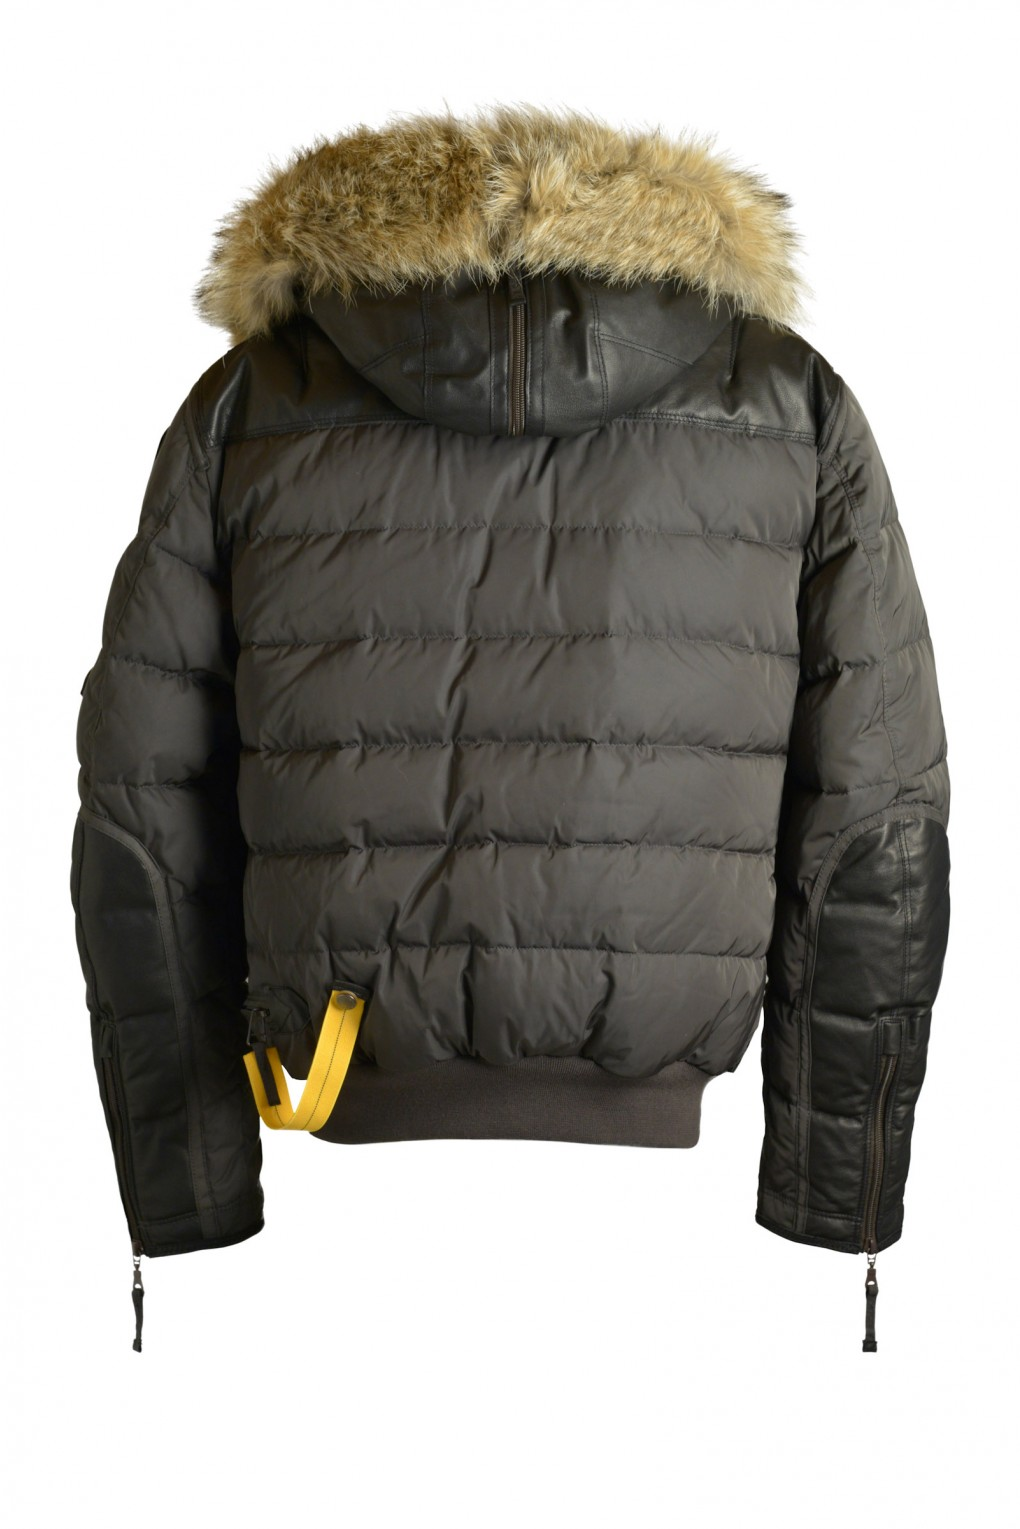 parajumpers GRIZZLY man outerwear Asphalt